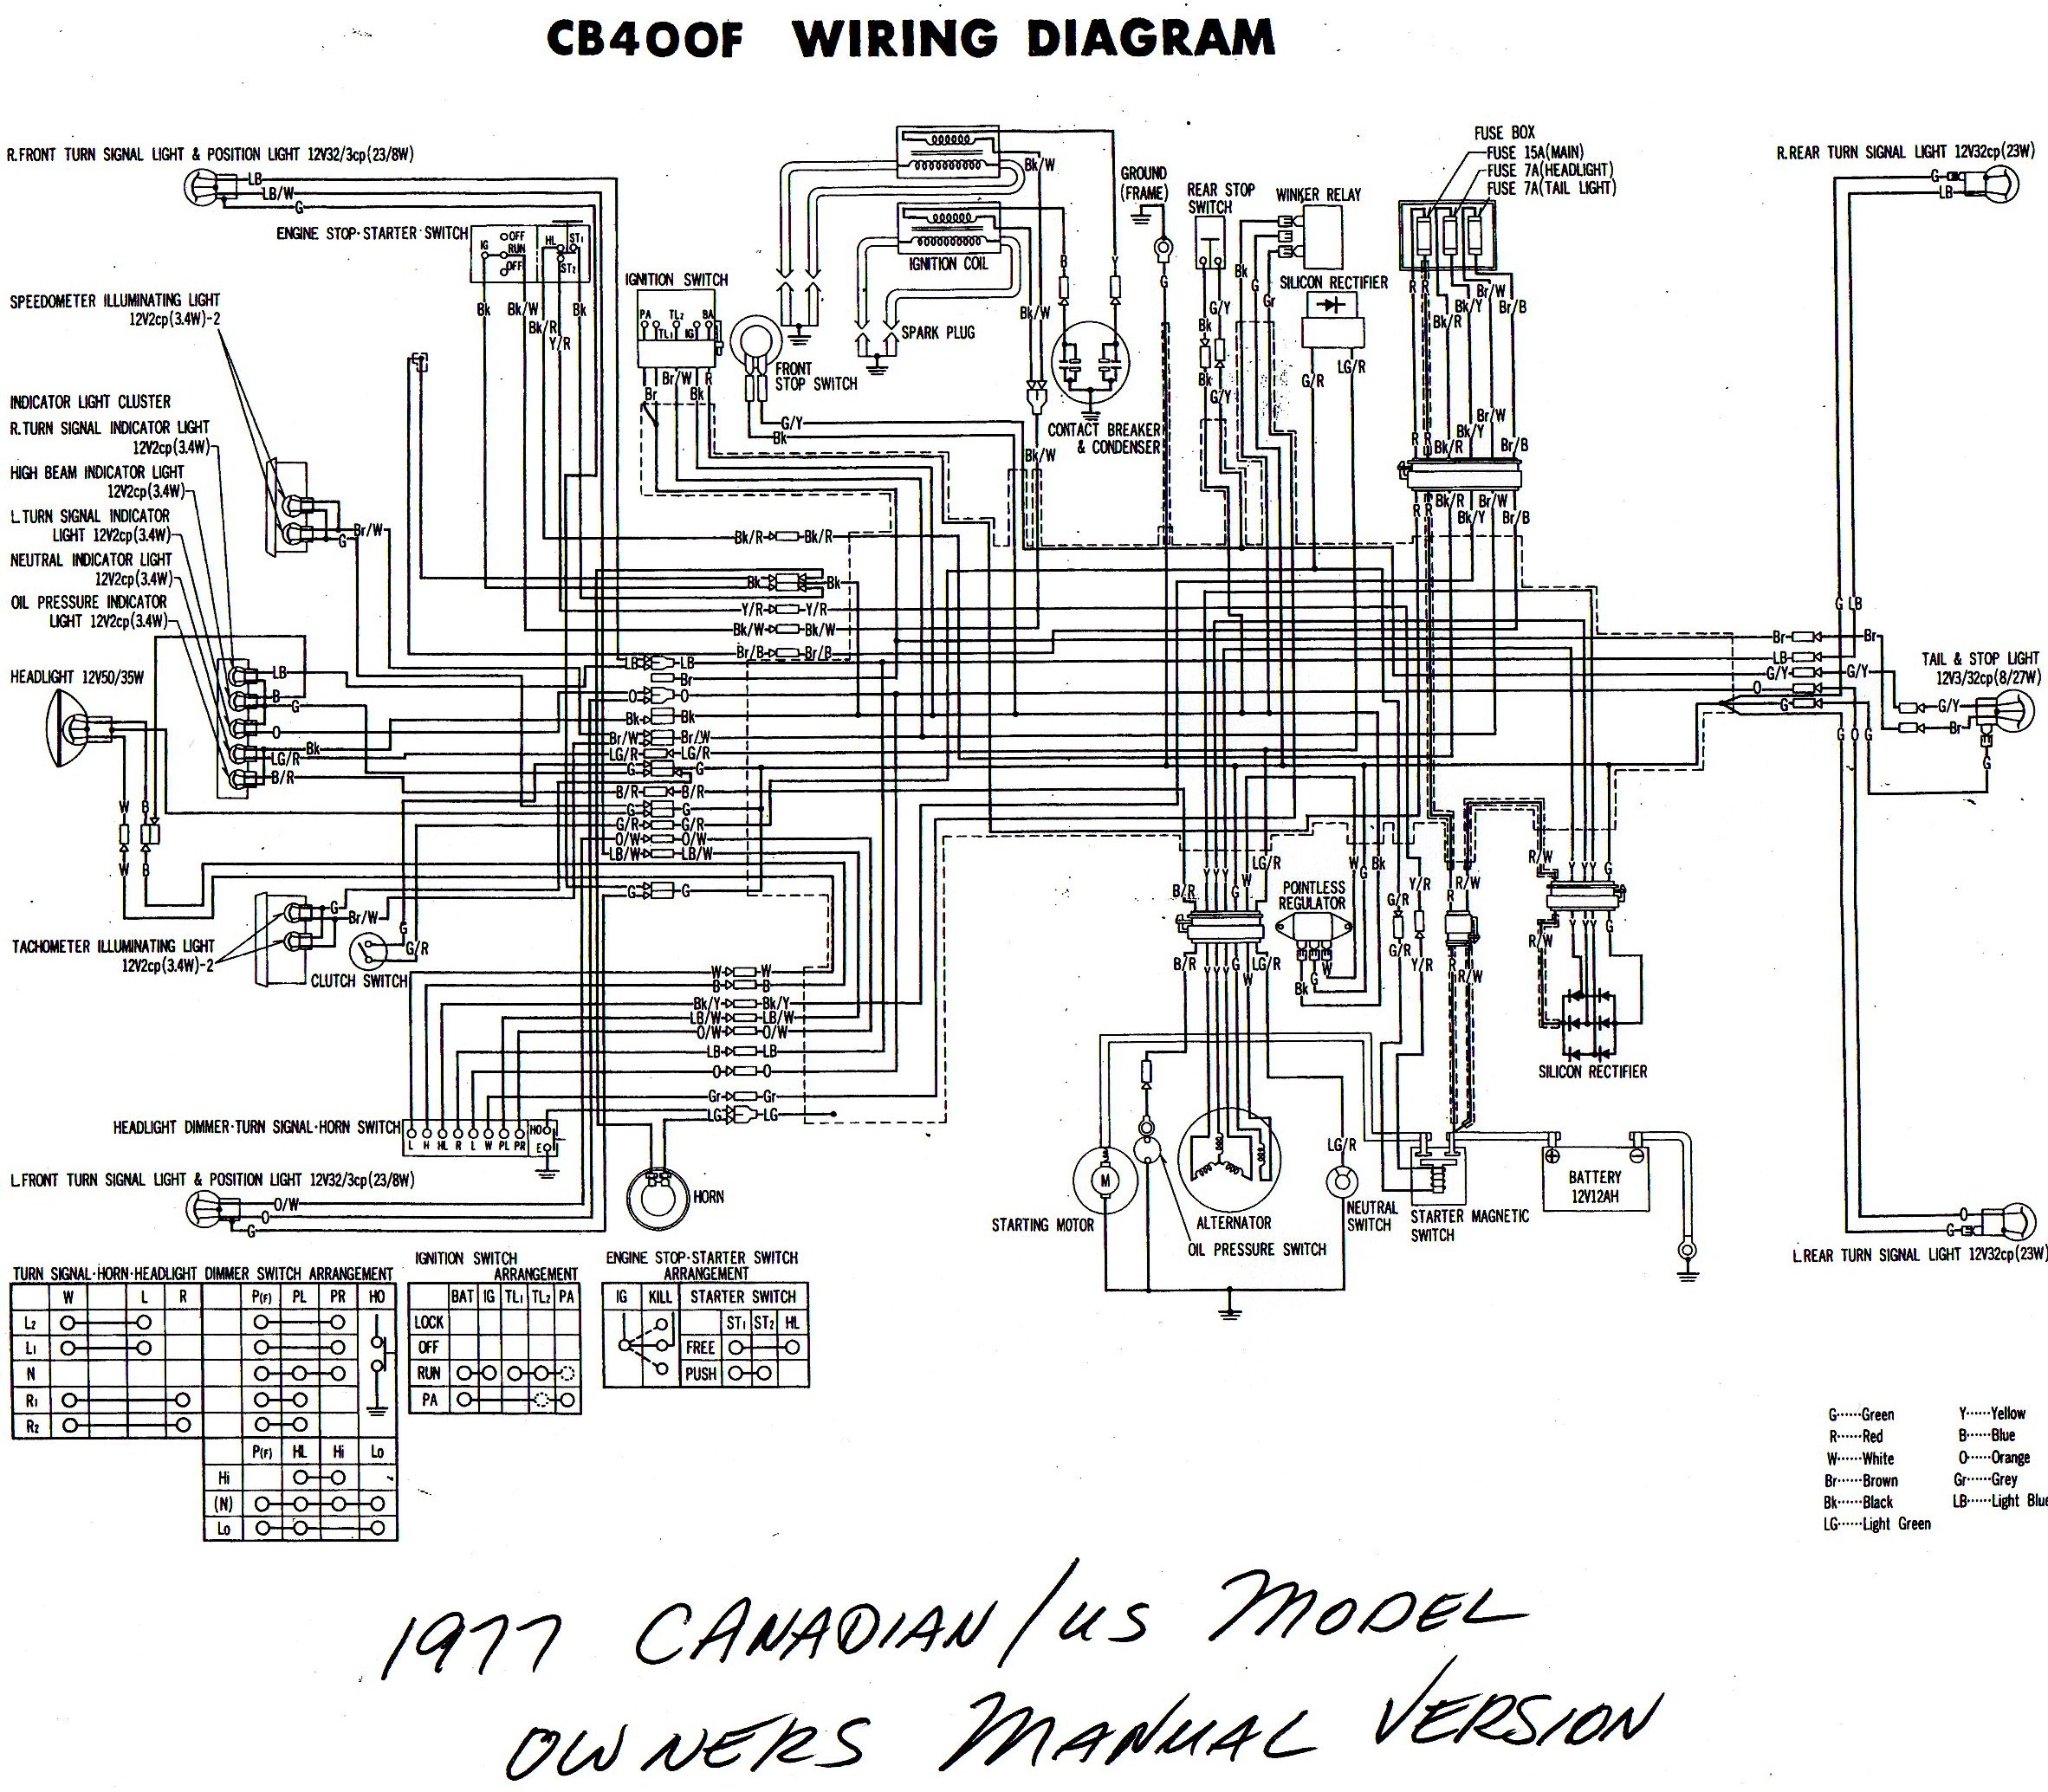 cb400f rh manuals sohc4 net 1975 Honda 360 Wiring-Diagram Honda Motorcycle Wiring Diagrams